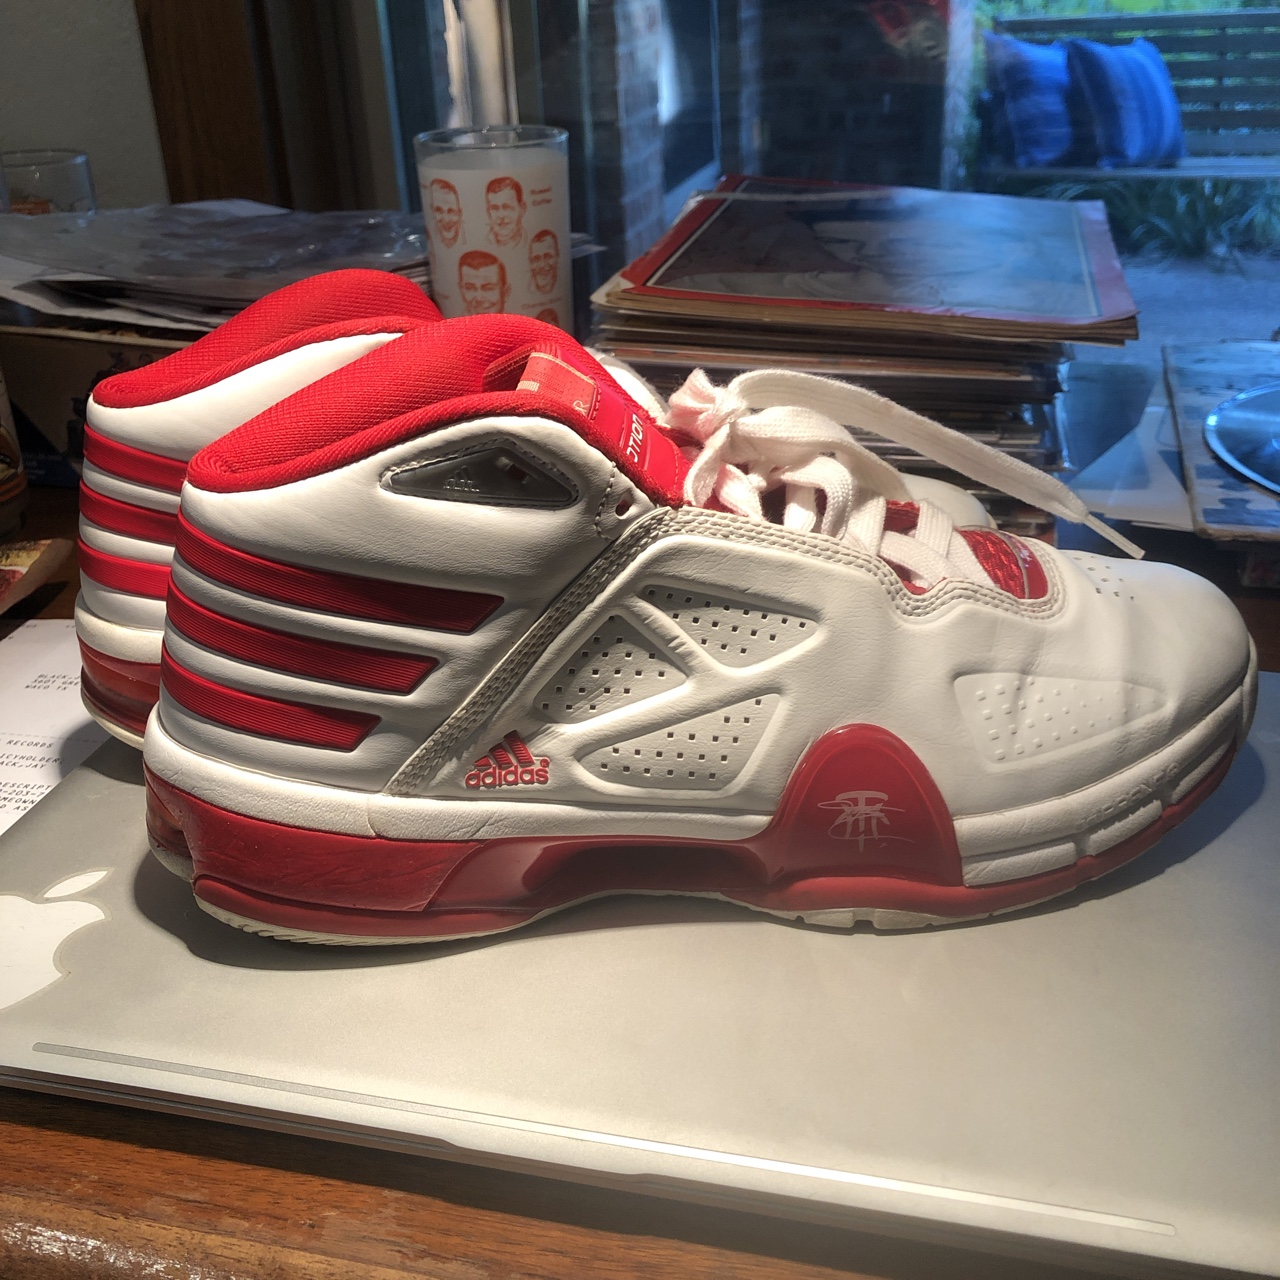 Adidas Formotion Creator Tracy Houston McGrady Depop KJTFcl1